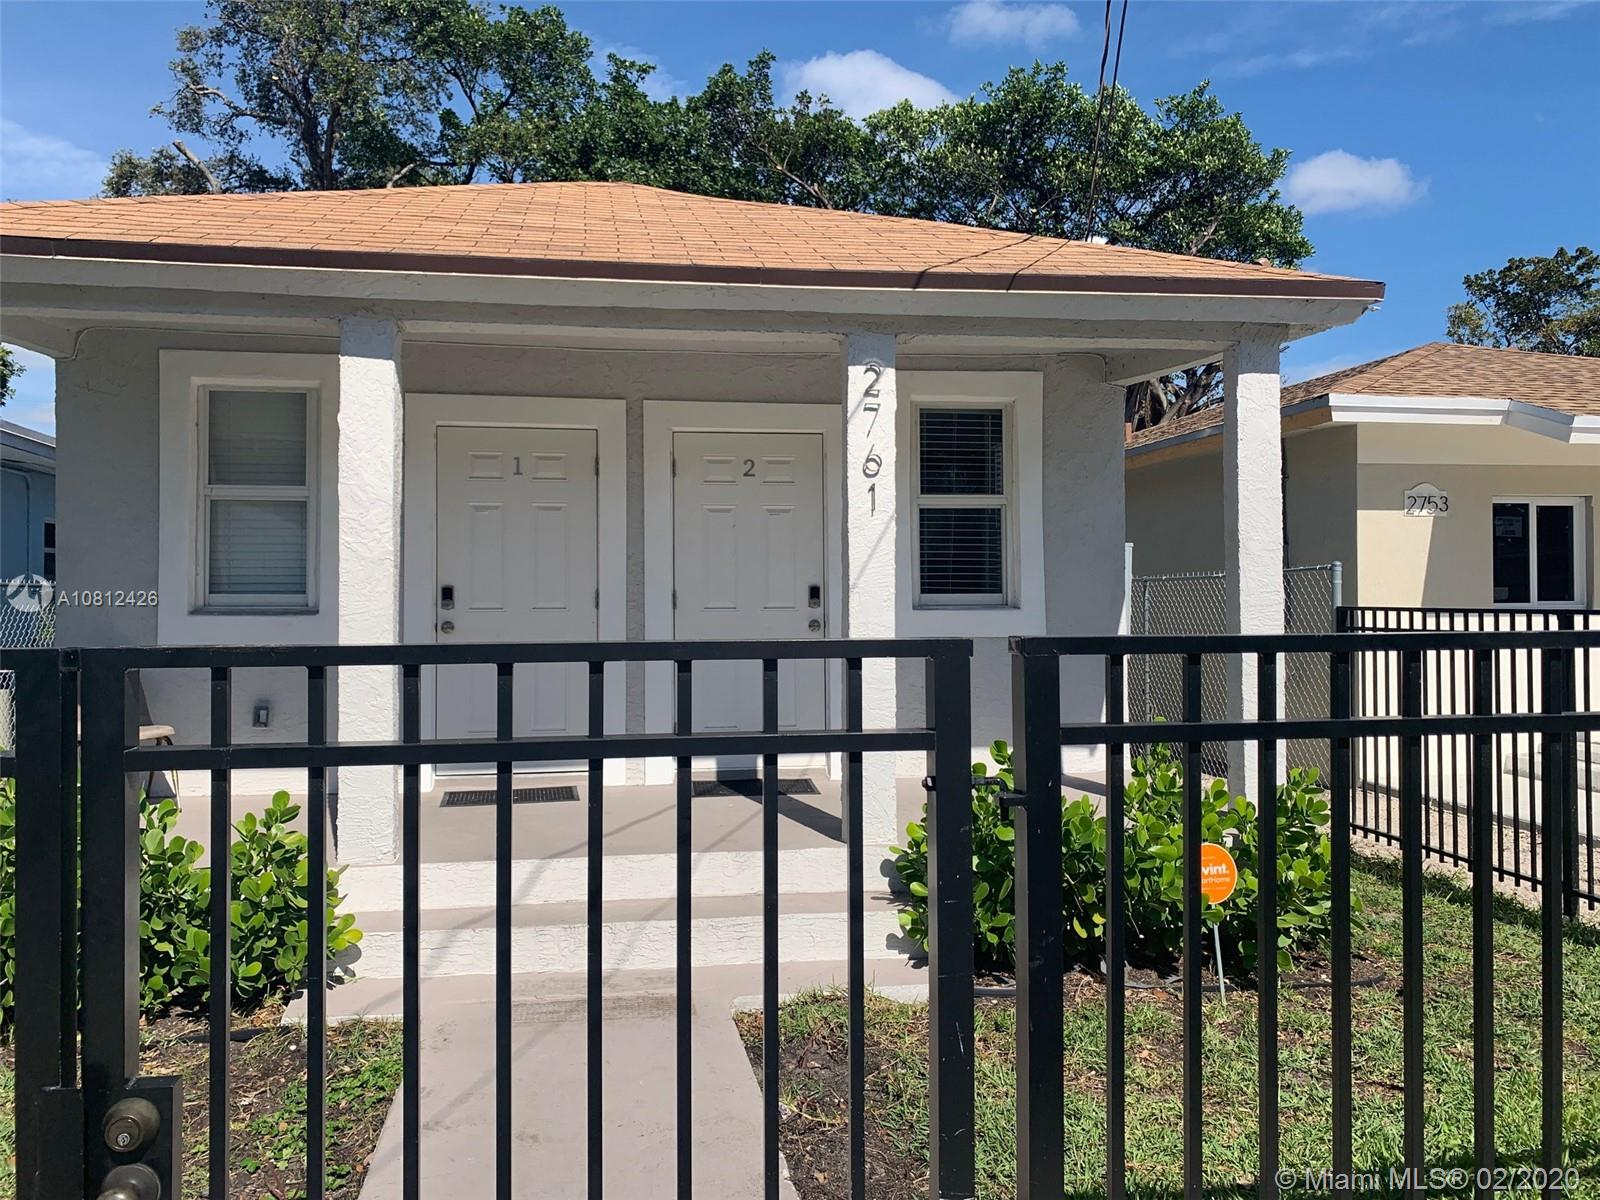 2761 NW 45th St #2 For Sale A10812426, FL